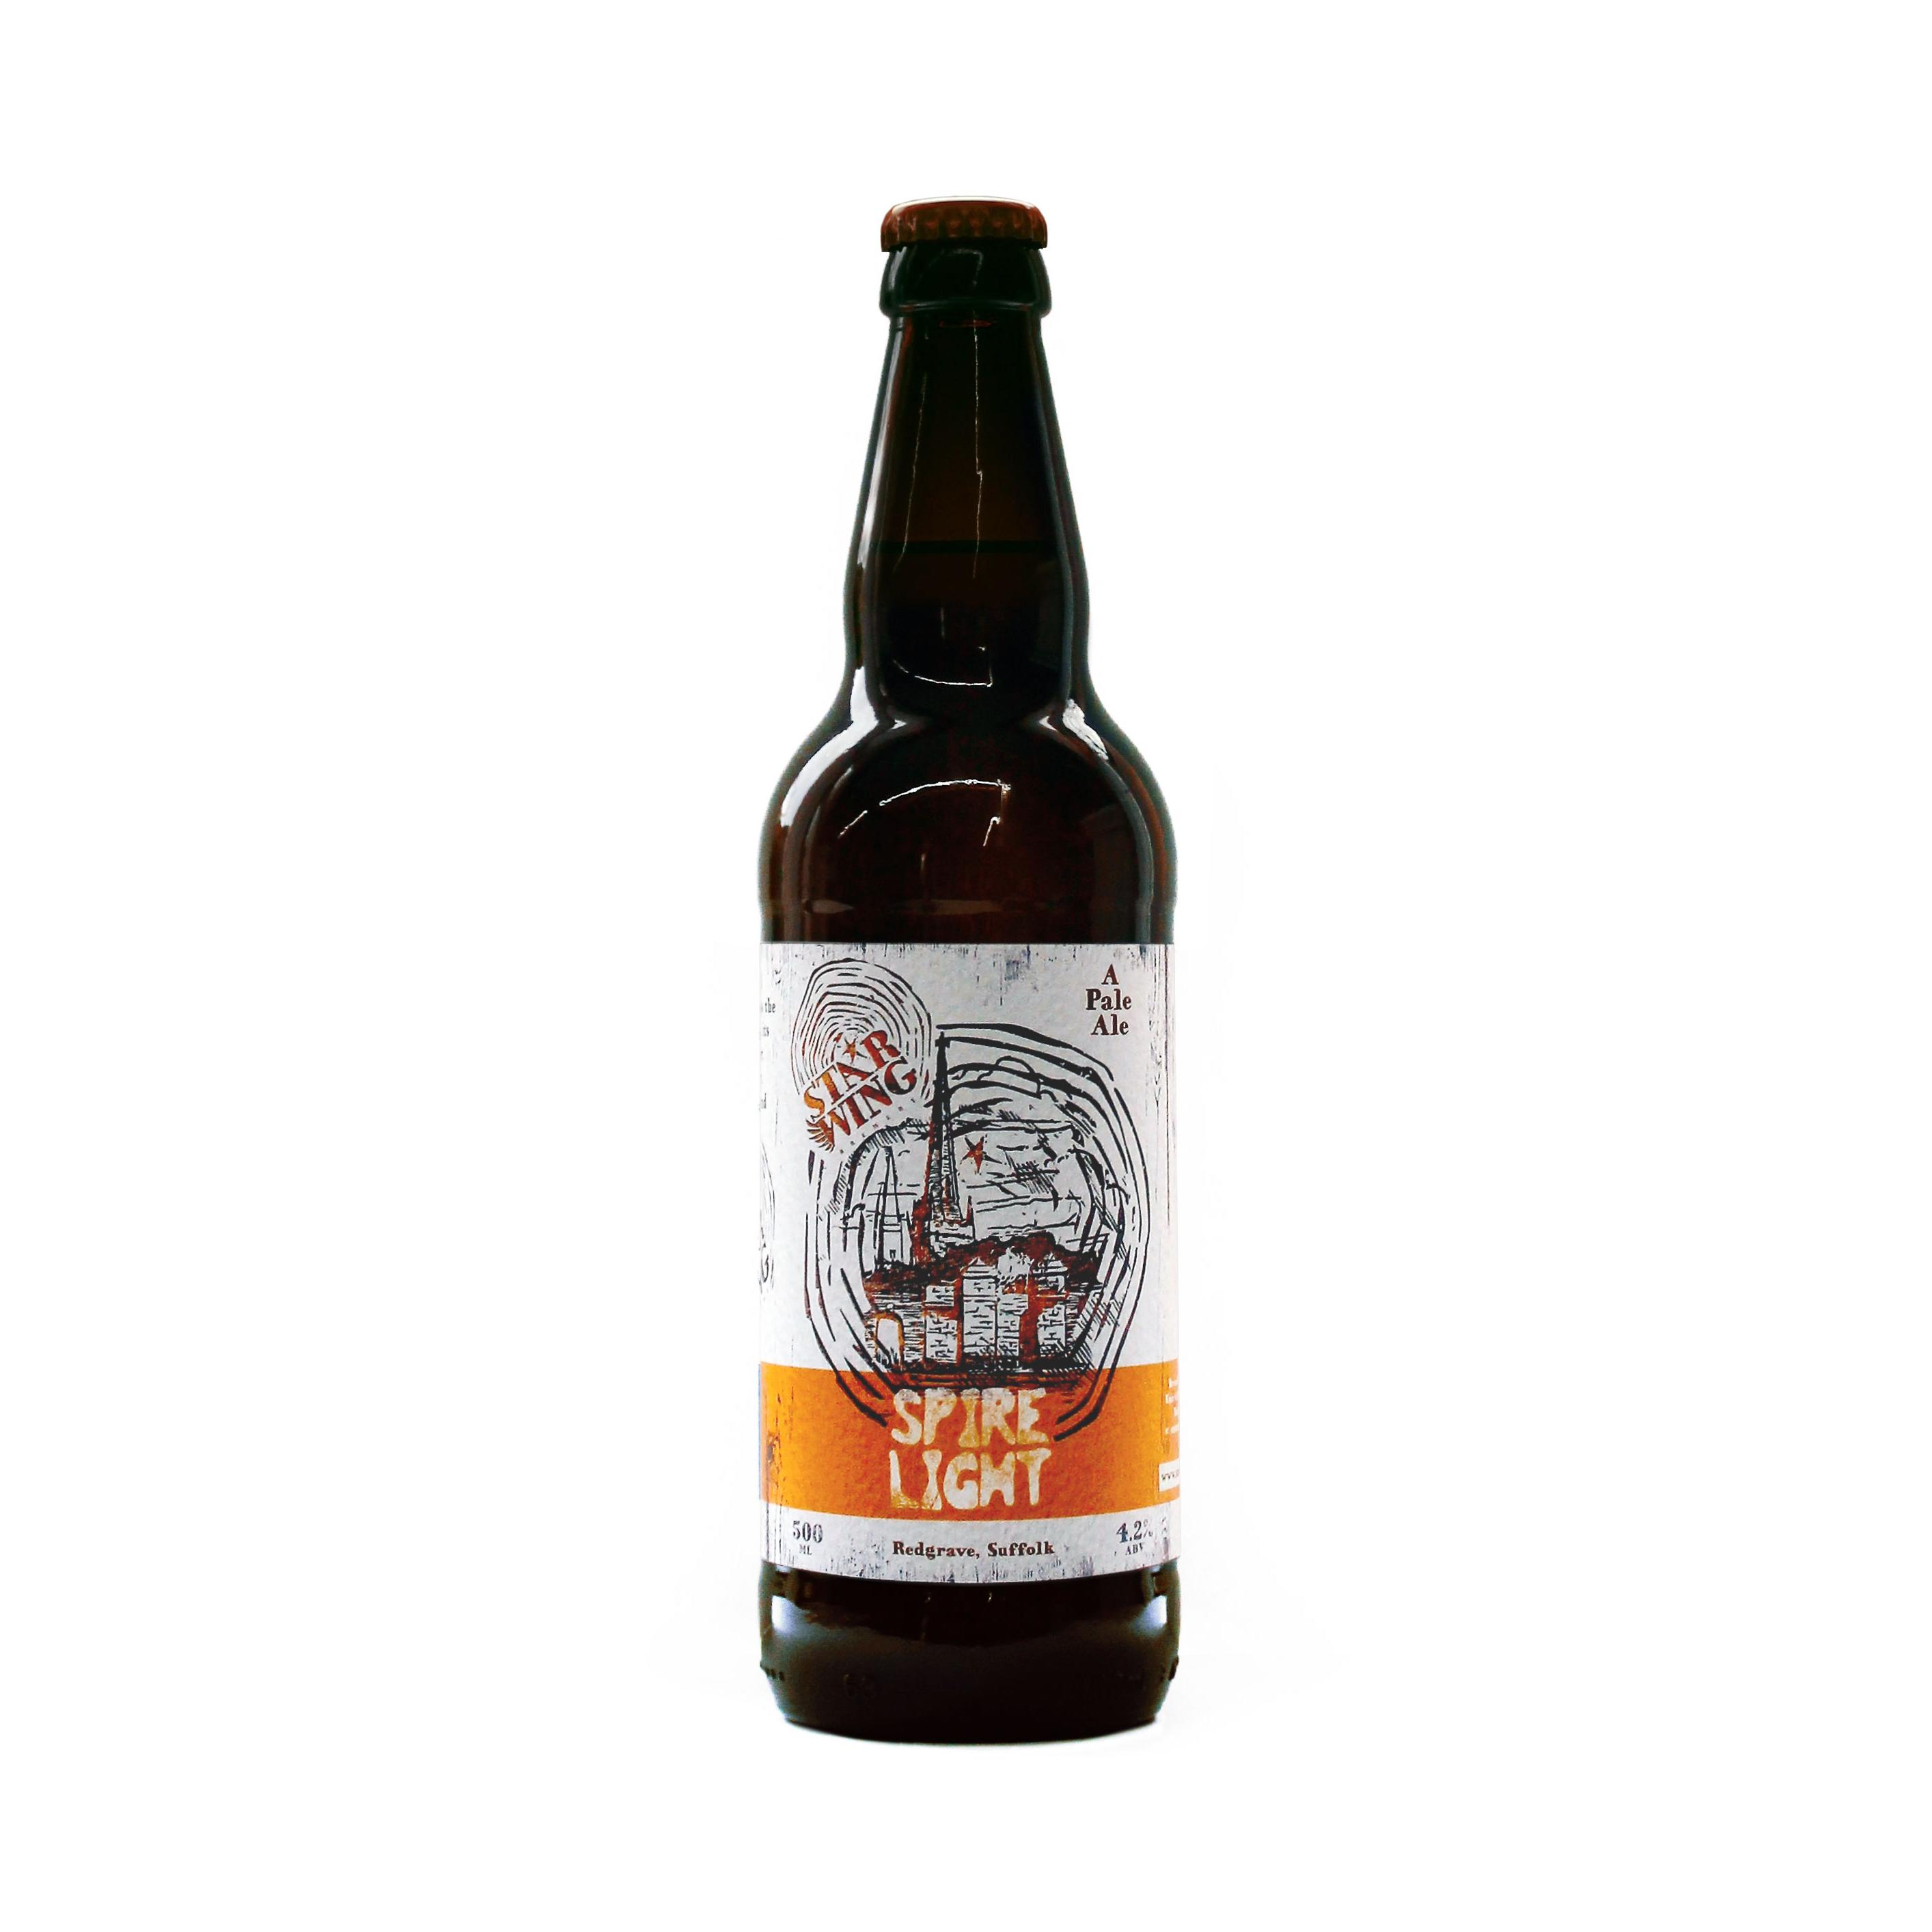 A 500ml bottle of delicious Star Wing Brewery's Spire Light, 4.2% Golden Ale